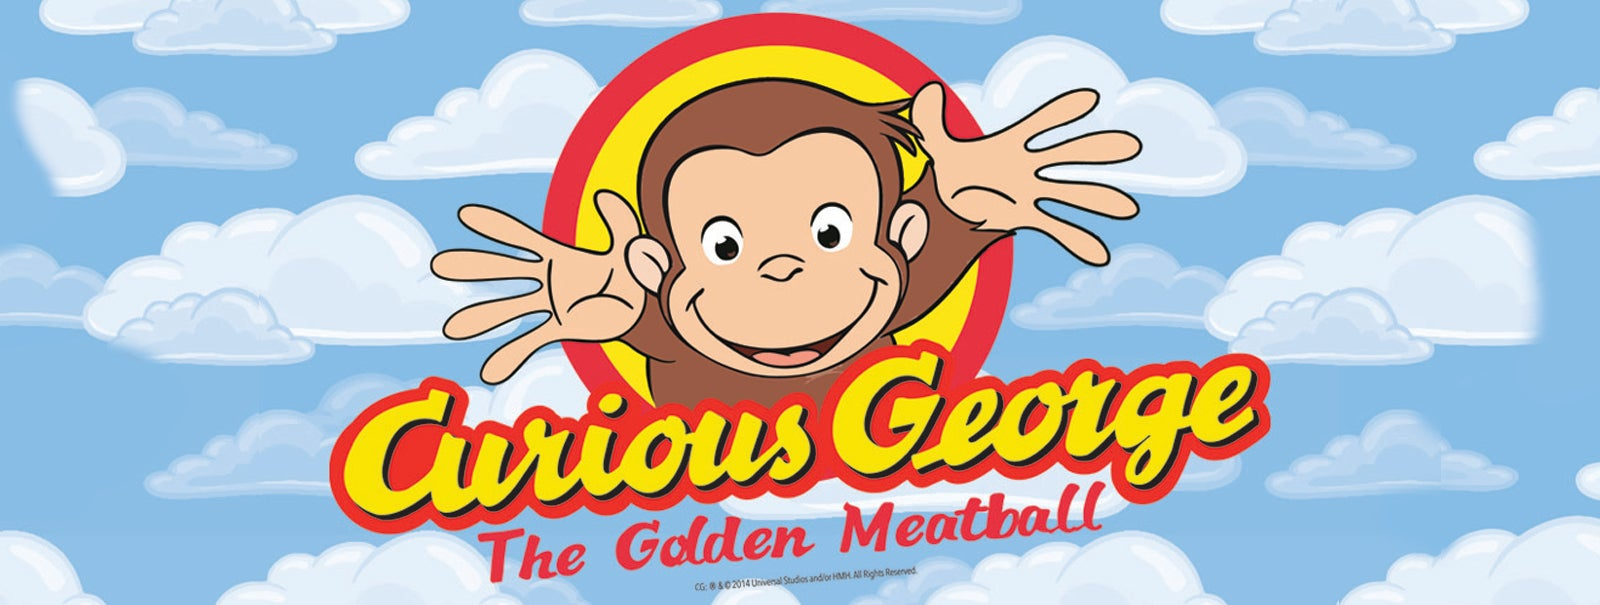 More Info - Curious George, A Virtual Musical: Family Fun Series